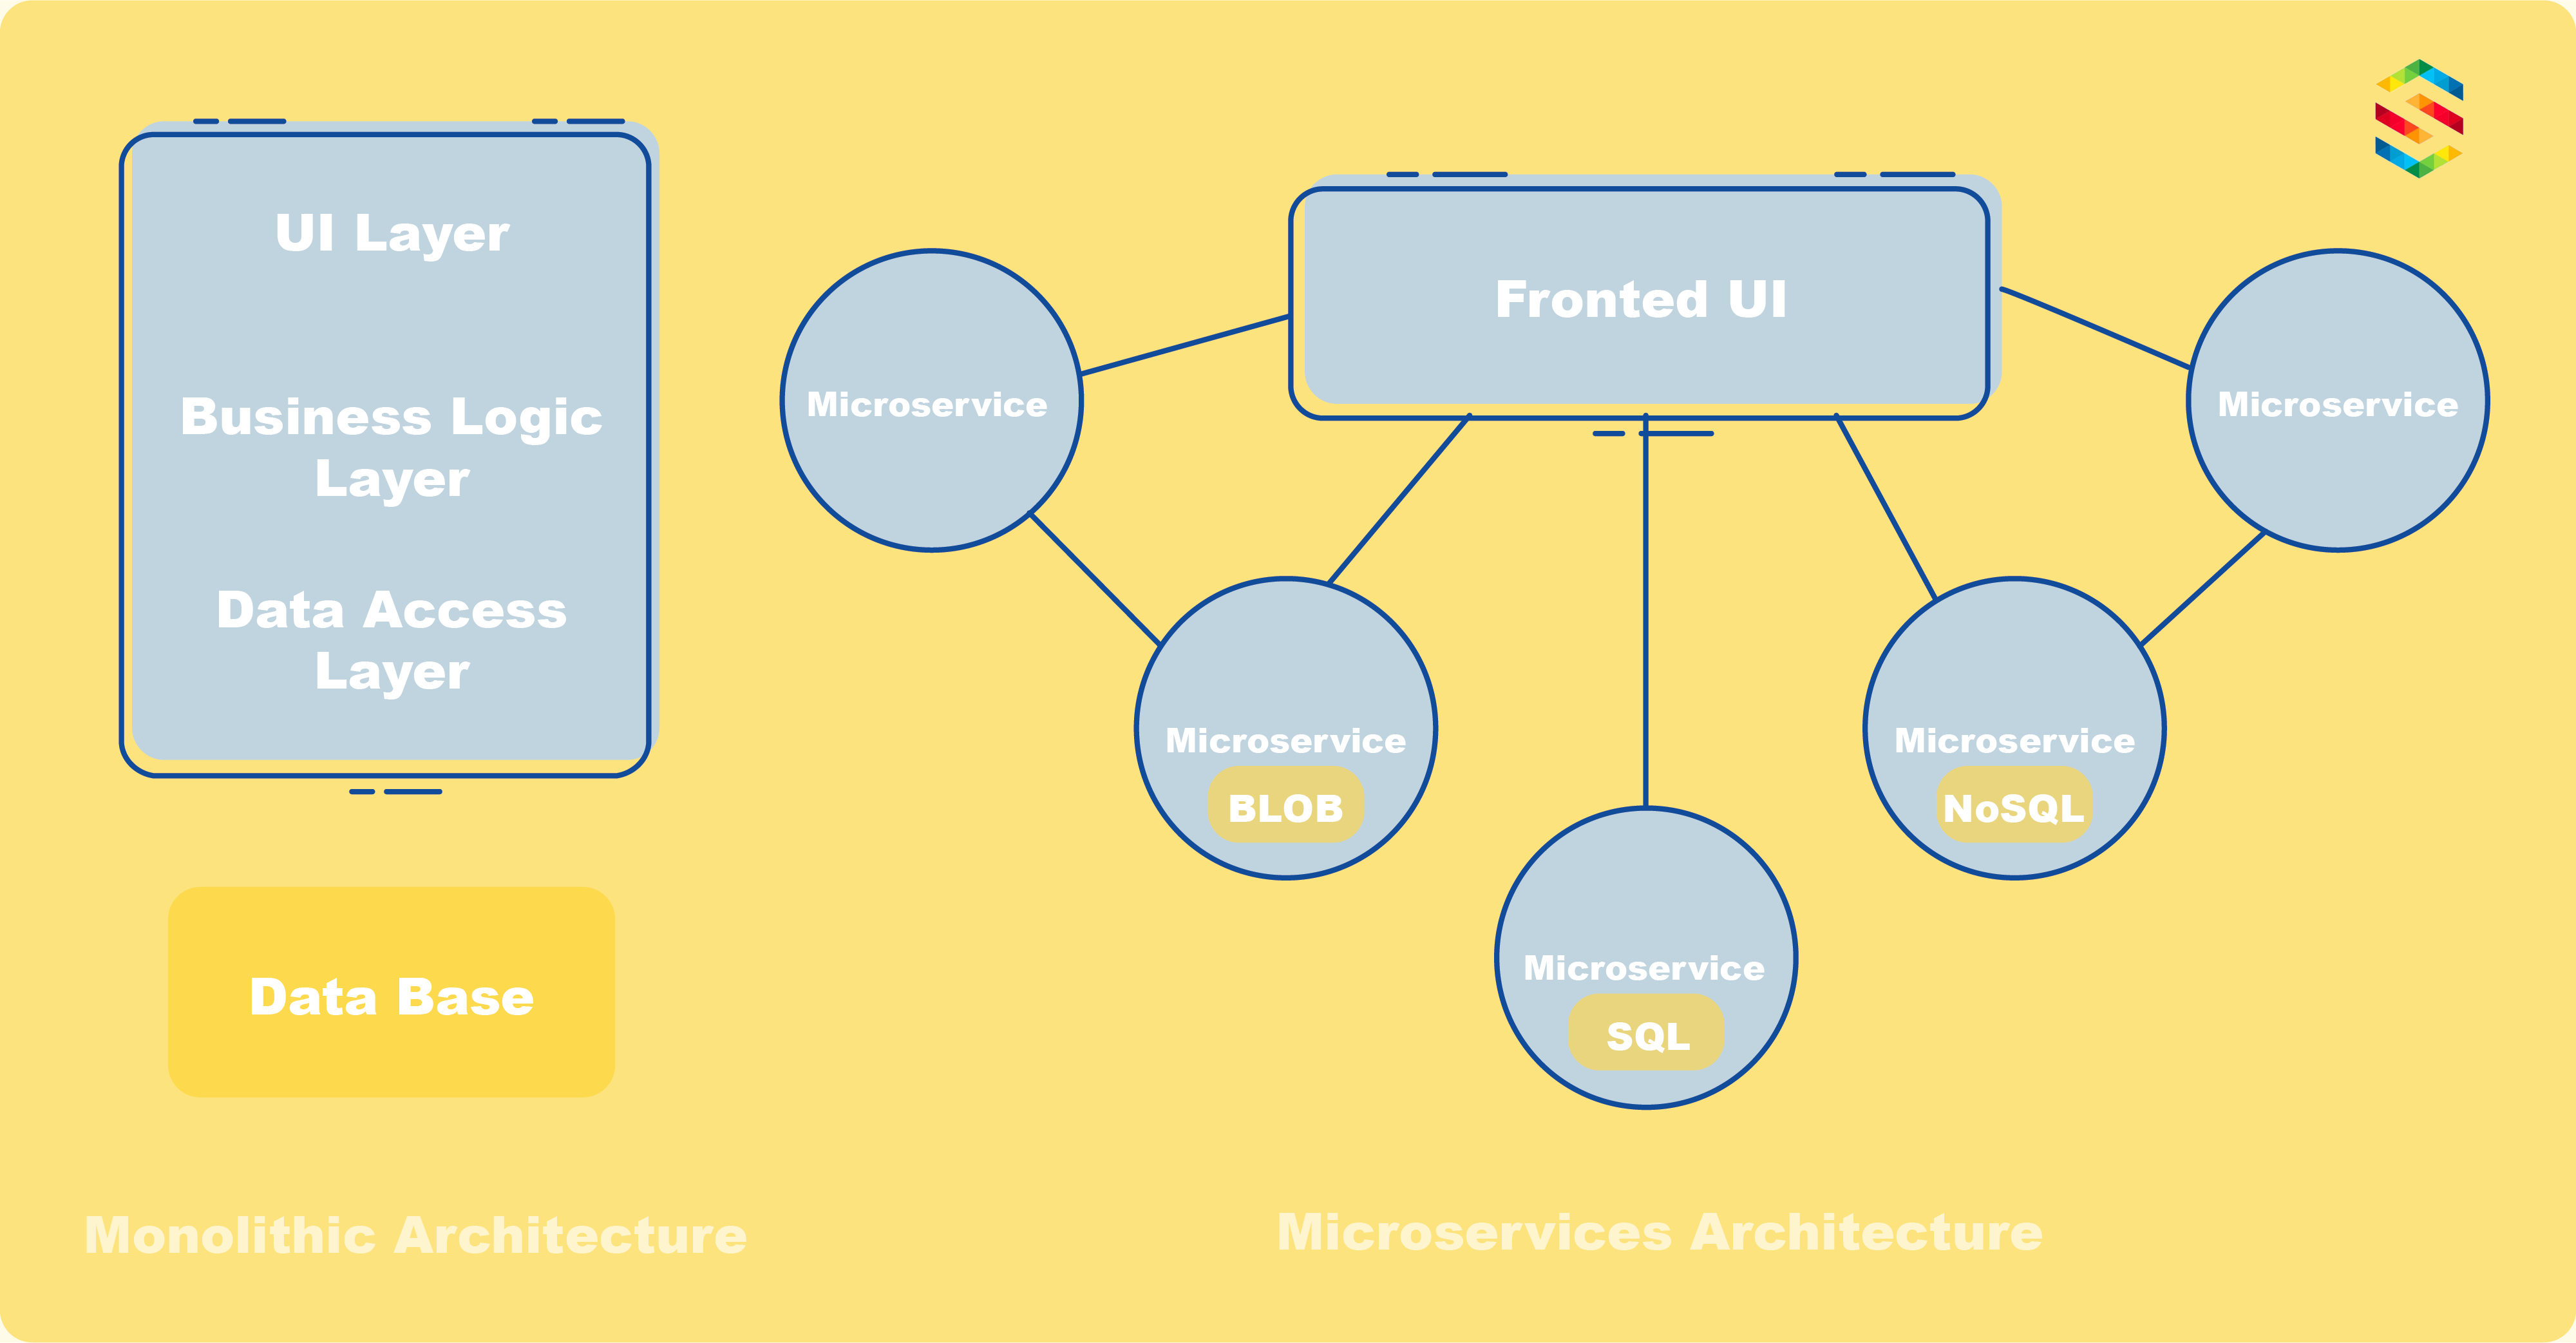 Difference between monolithic and microservices architecture